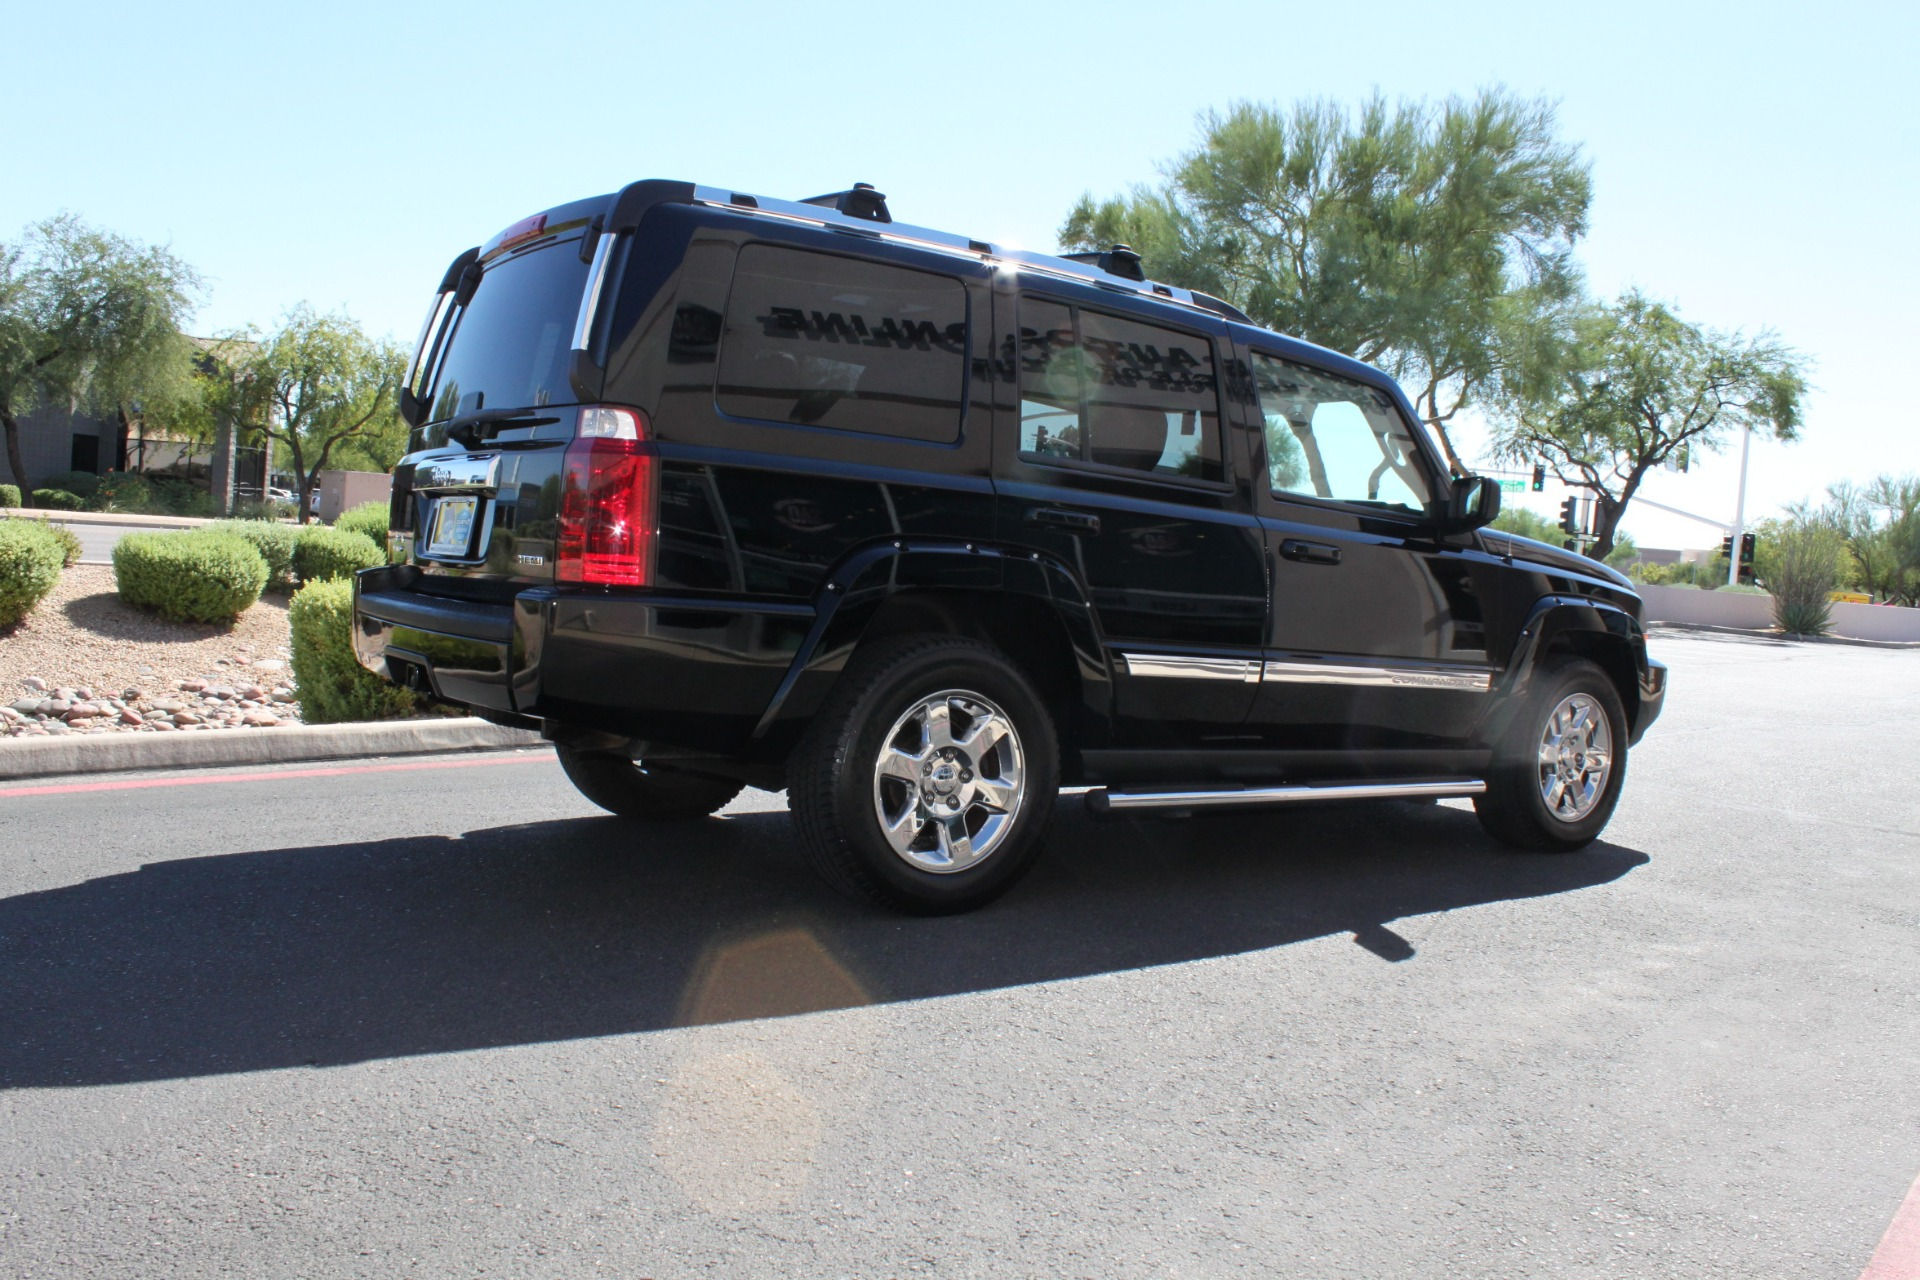 Used-2007-Jeep-Commander-Limited-Land-Cruiser